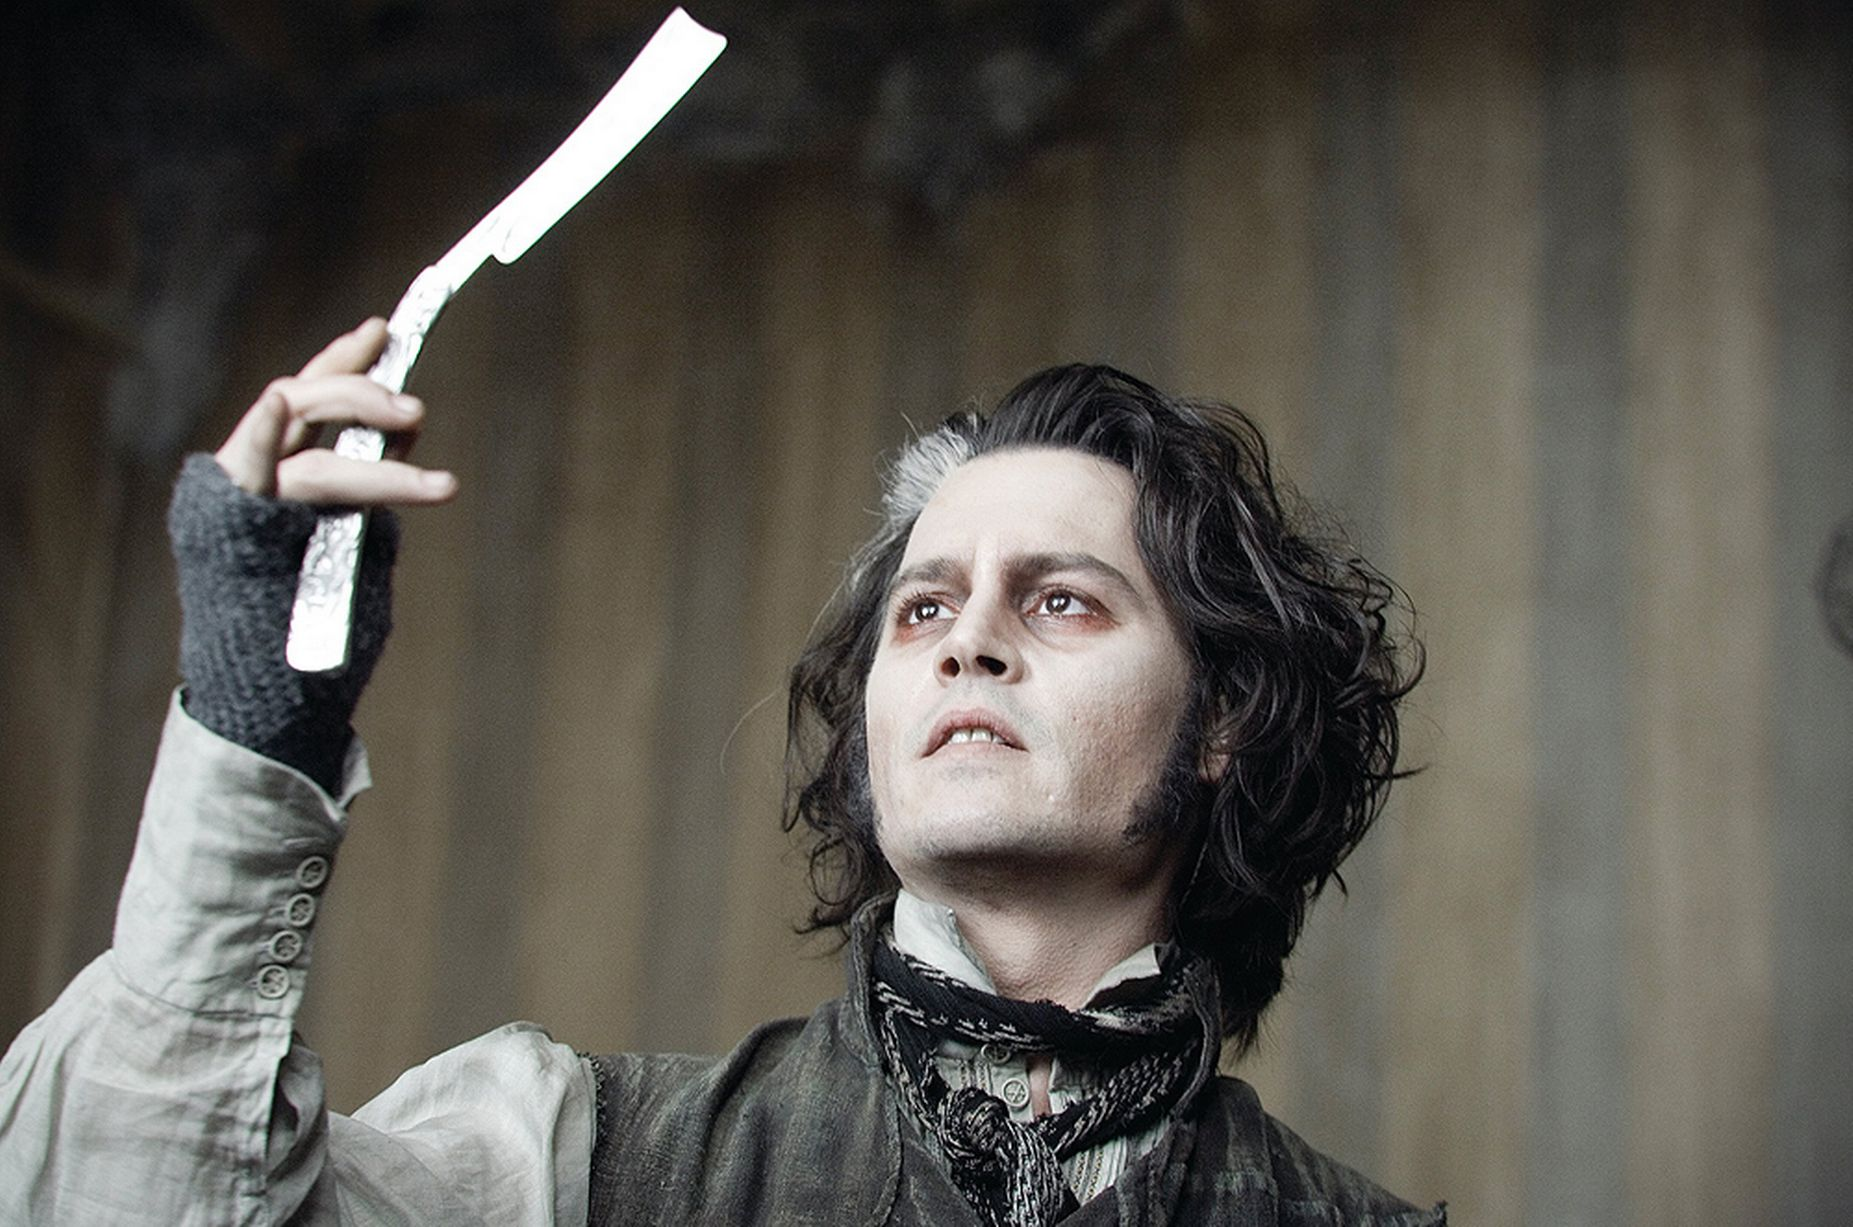 Sweeney-Todd-2007-Johnny-Depp